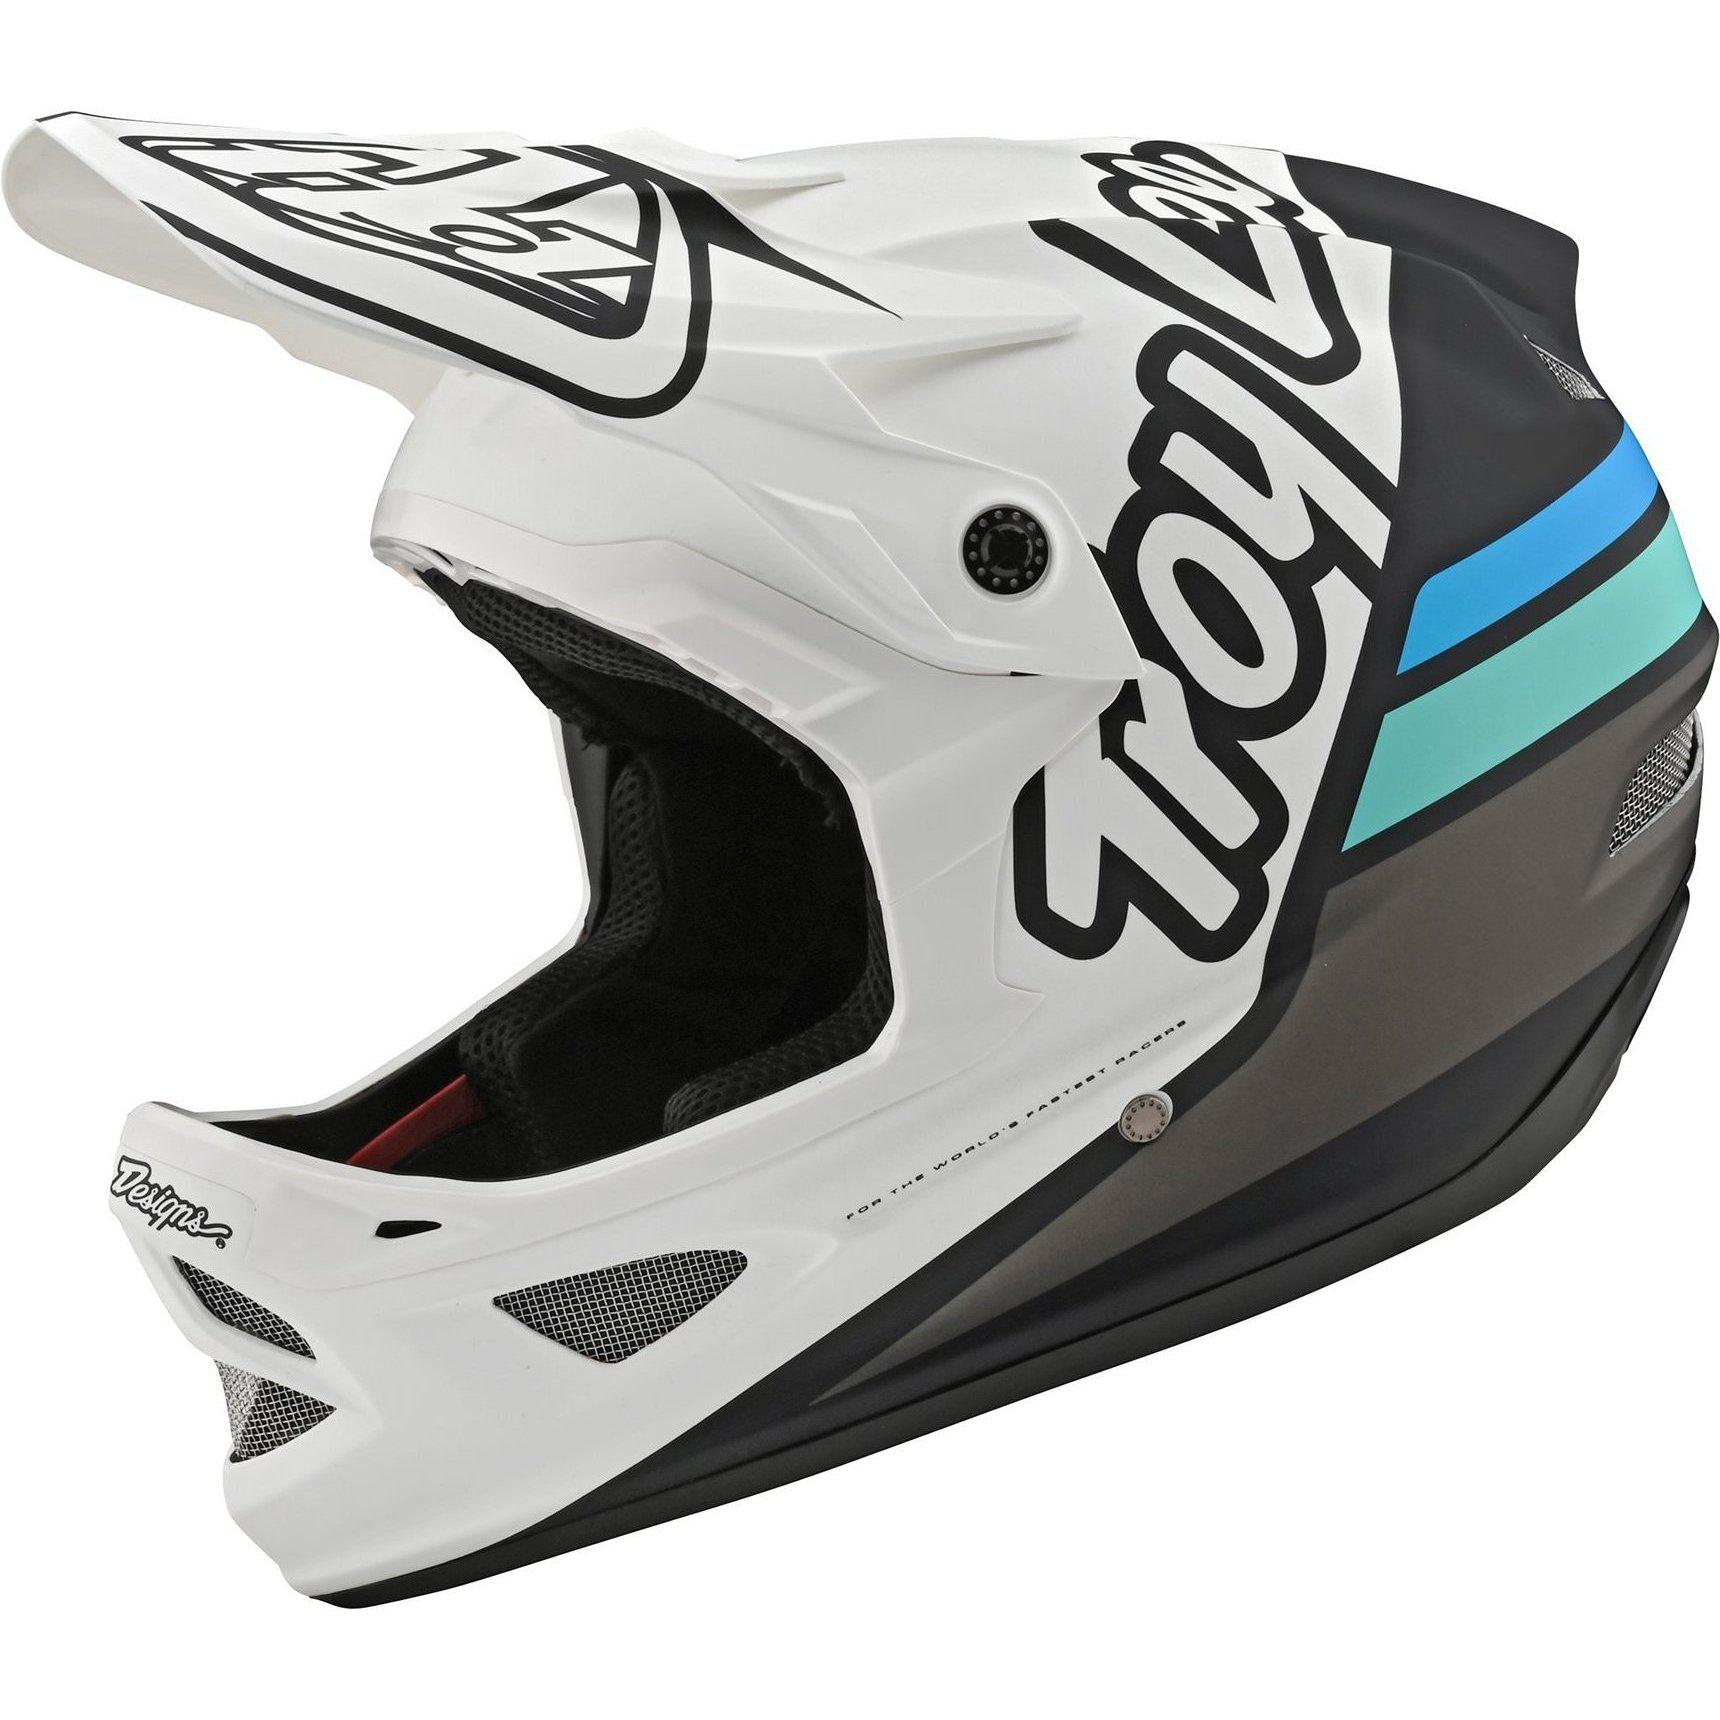 Troy Lee Designs-Troy Lee Designs D3 Fiberlite Helmet-Silhouette - White/Navy-L-TLD198757034-saddleback-elite-performance-cycling